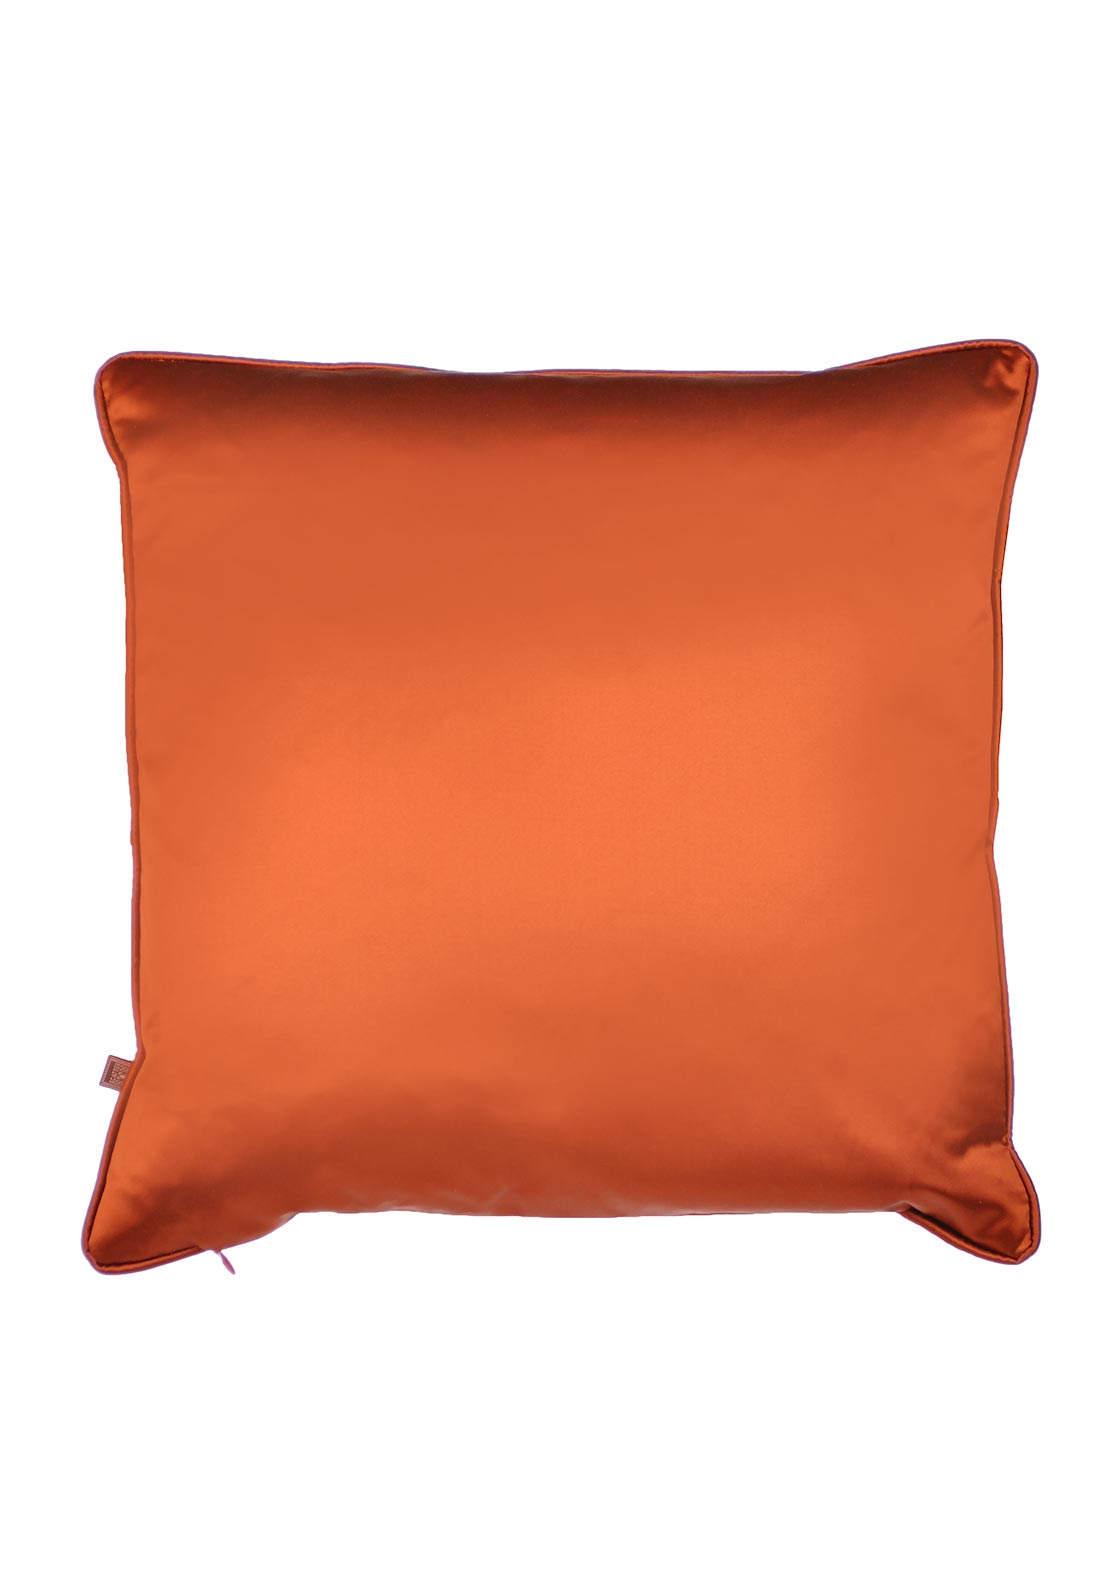 Scatterbox Romanov Square Cushion 45x45cm, Amber